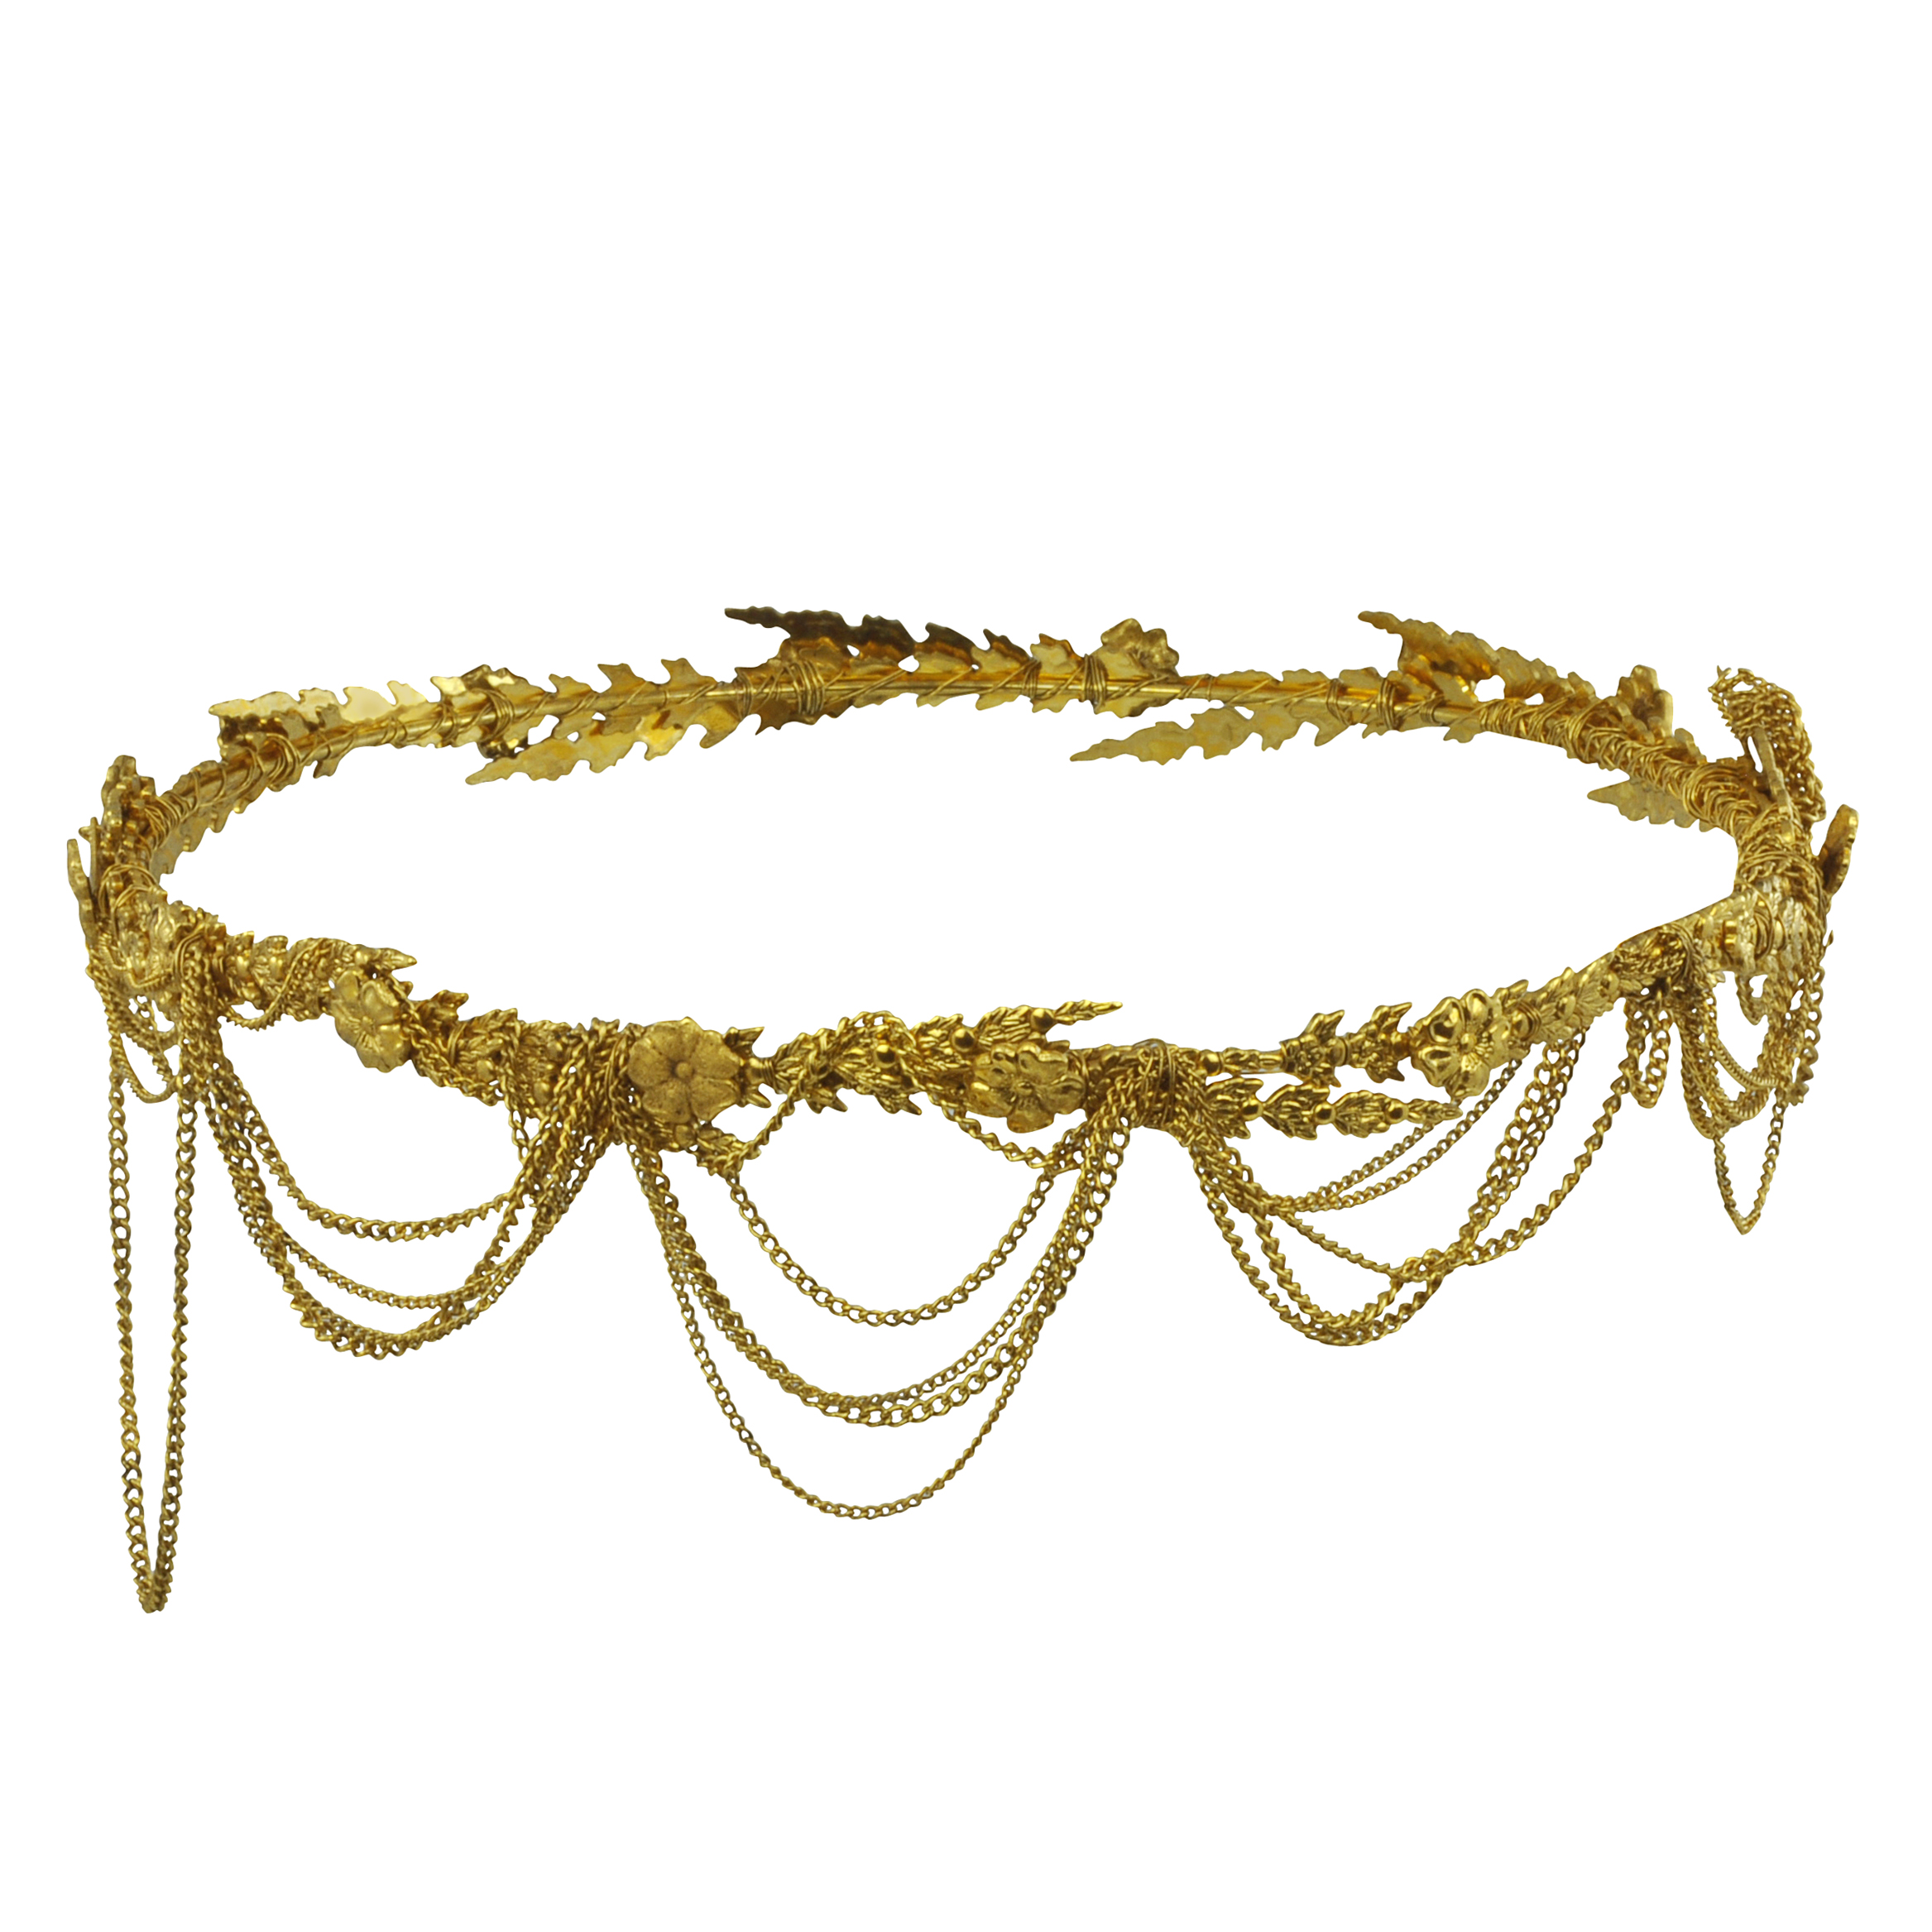 Jenifer Behr Draped Chain Annika Circlet Headpiece - Sophie's Closet